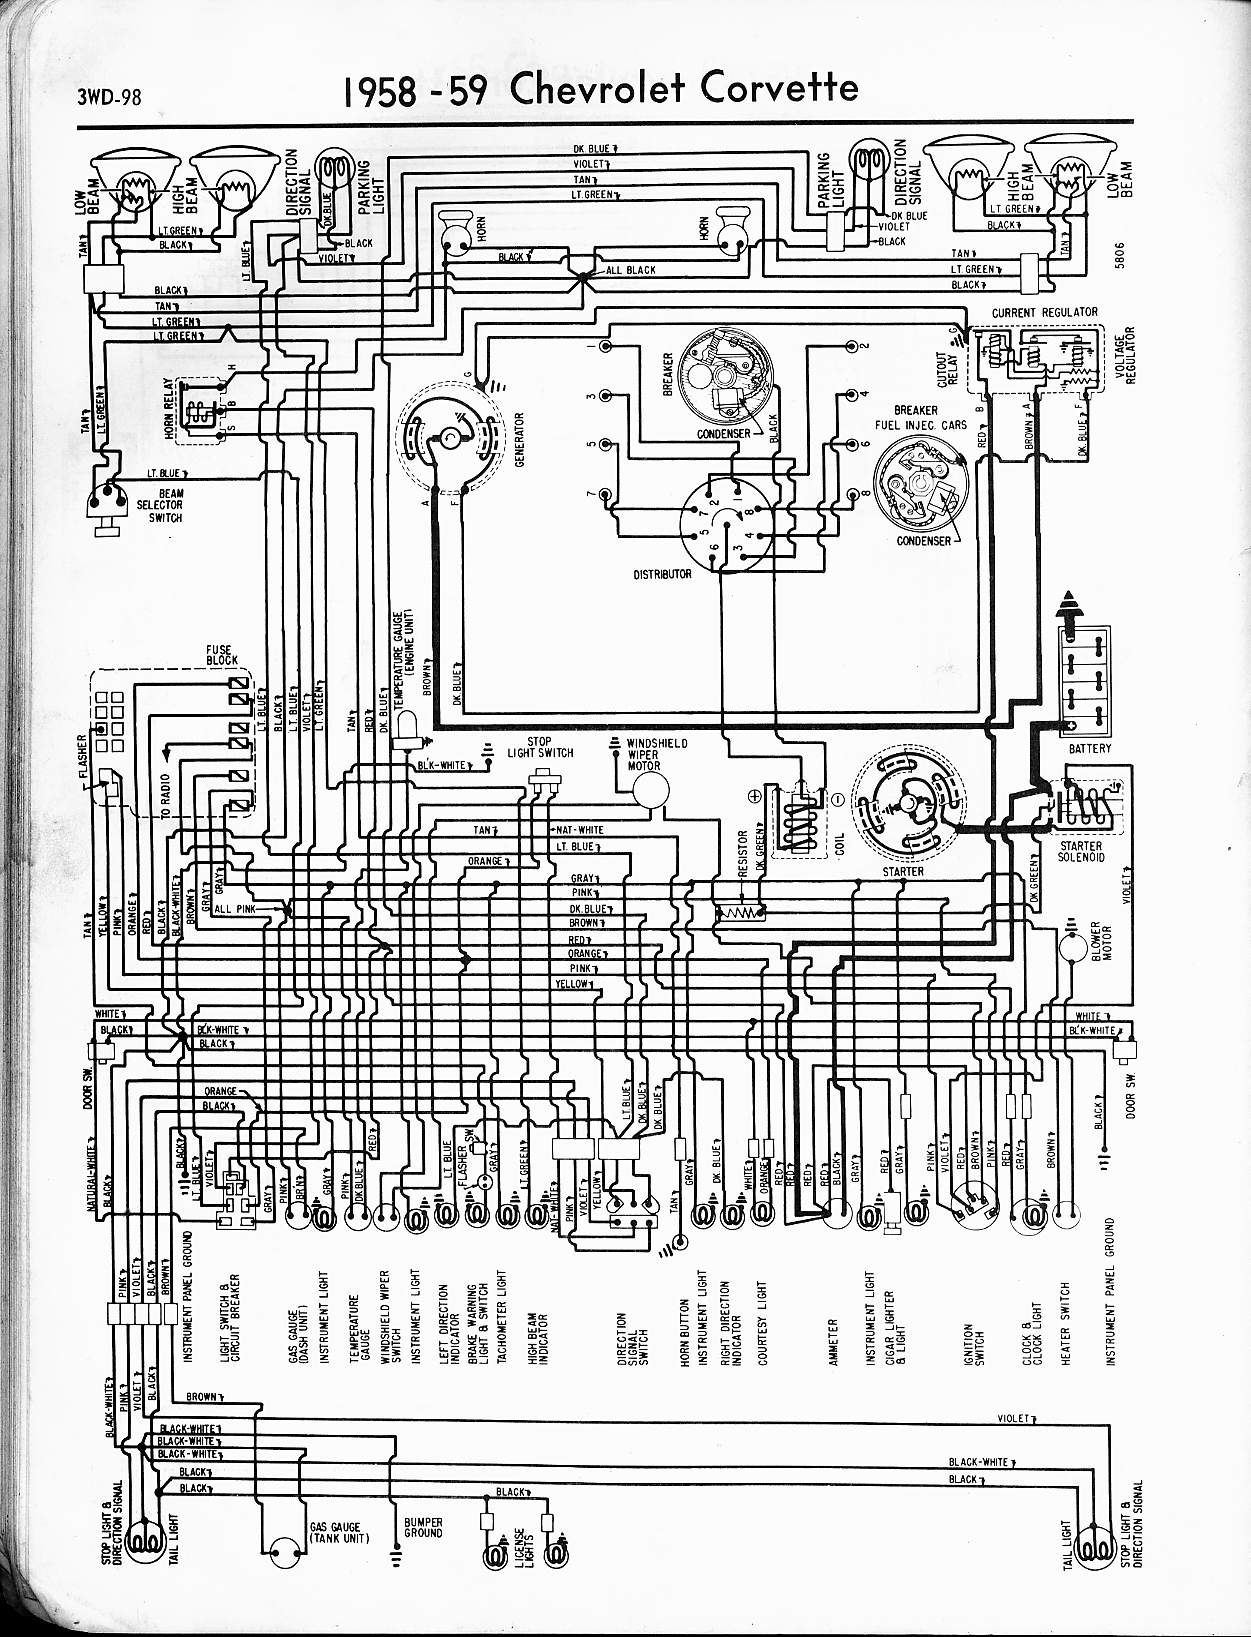 chevy wiring diagrams 1958 corvette